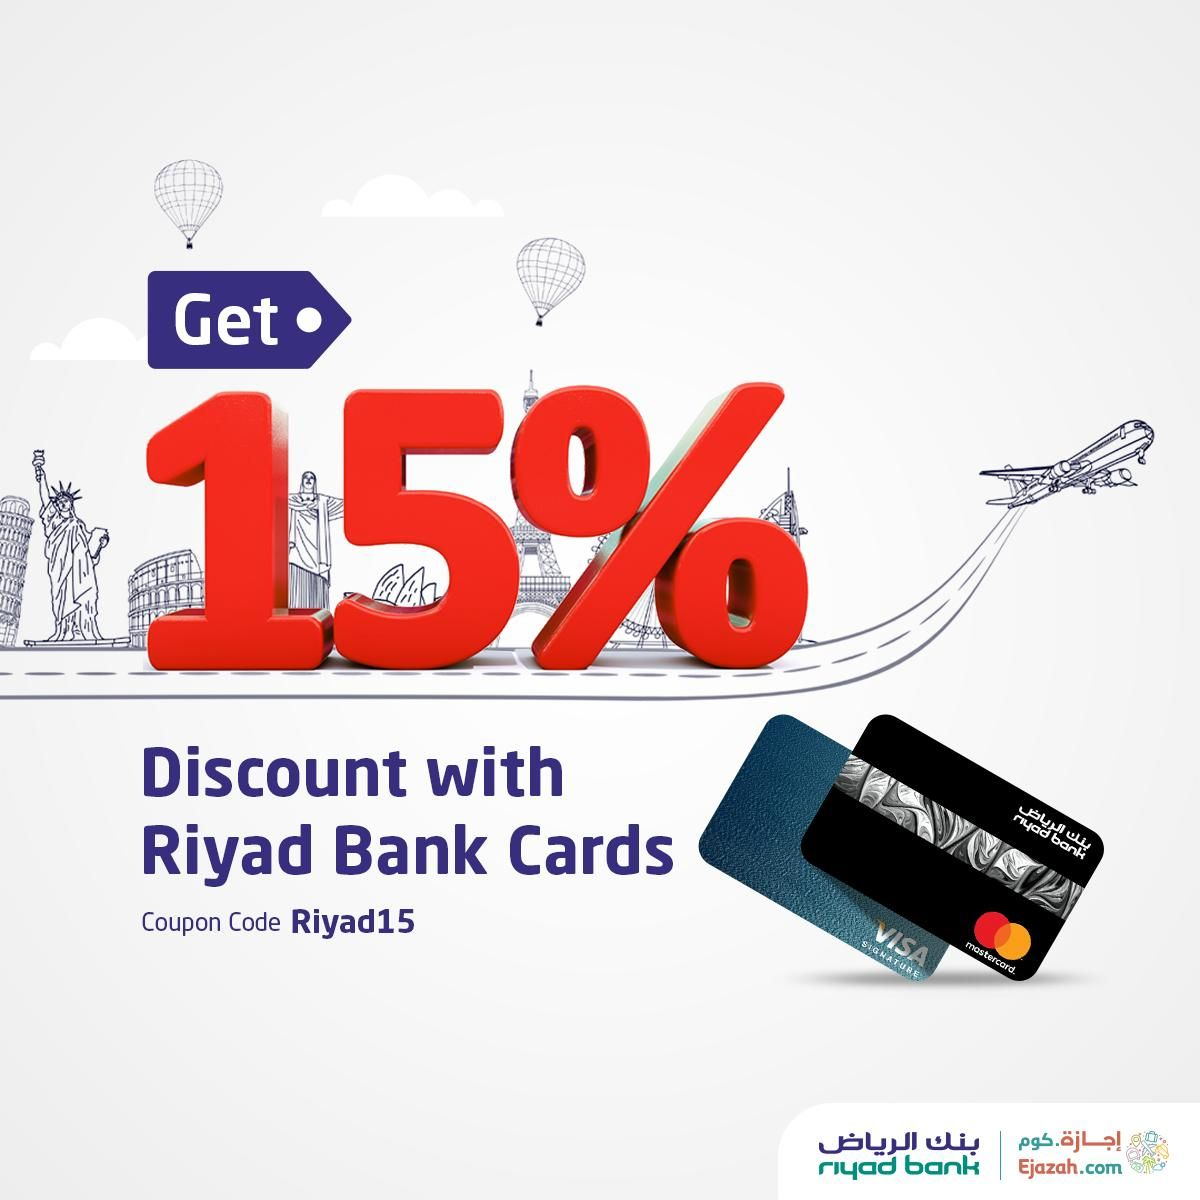 This Weekend Book Your Next Travel From Riyadh To Cairo And Save Big With Riyad Bank Cards Get Up To 15 Of Flight And Hotel Book Cheap Flights Cheap Flights